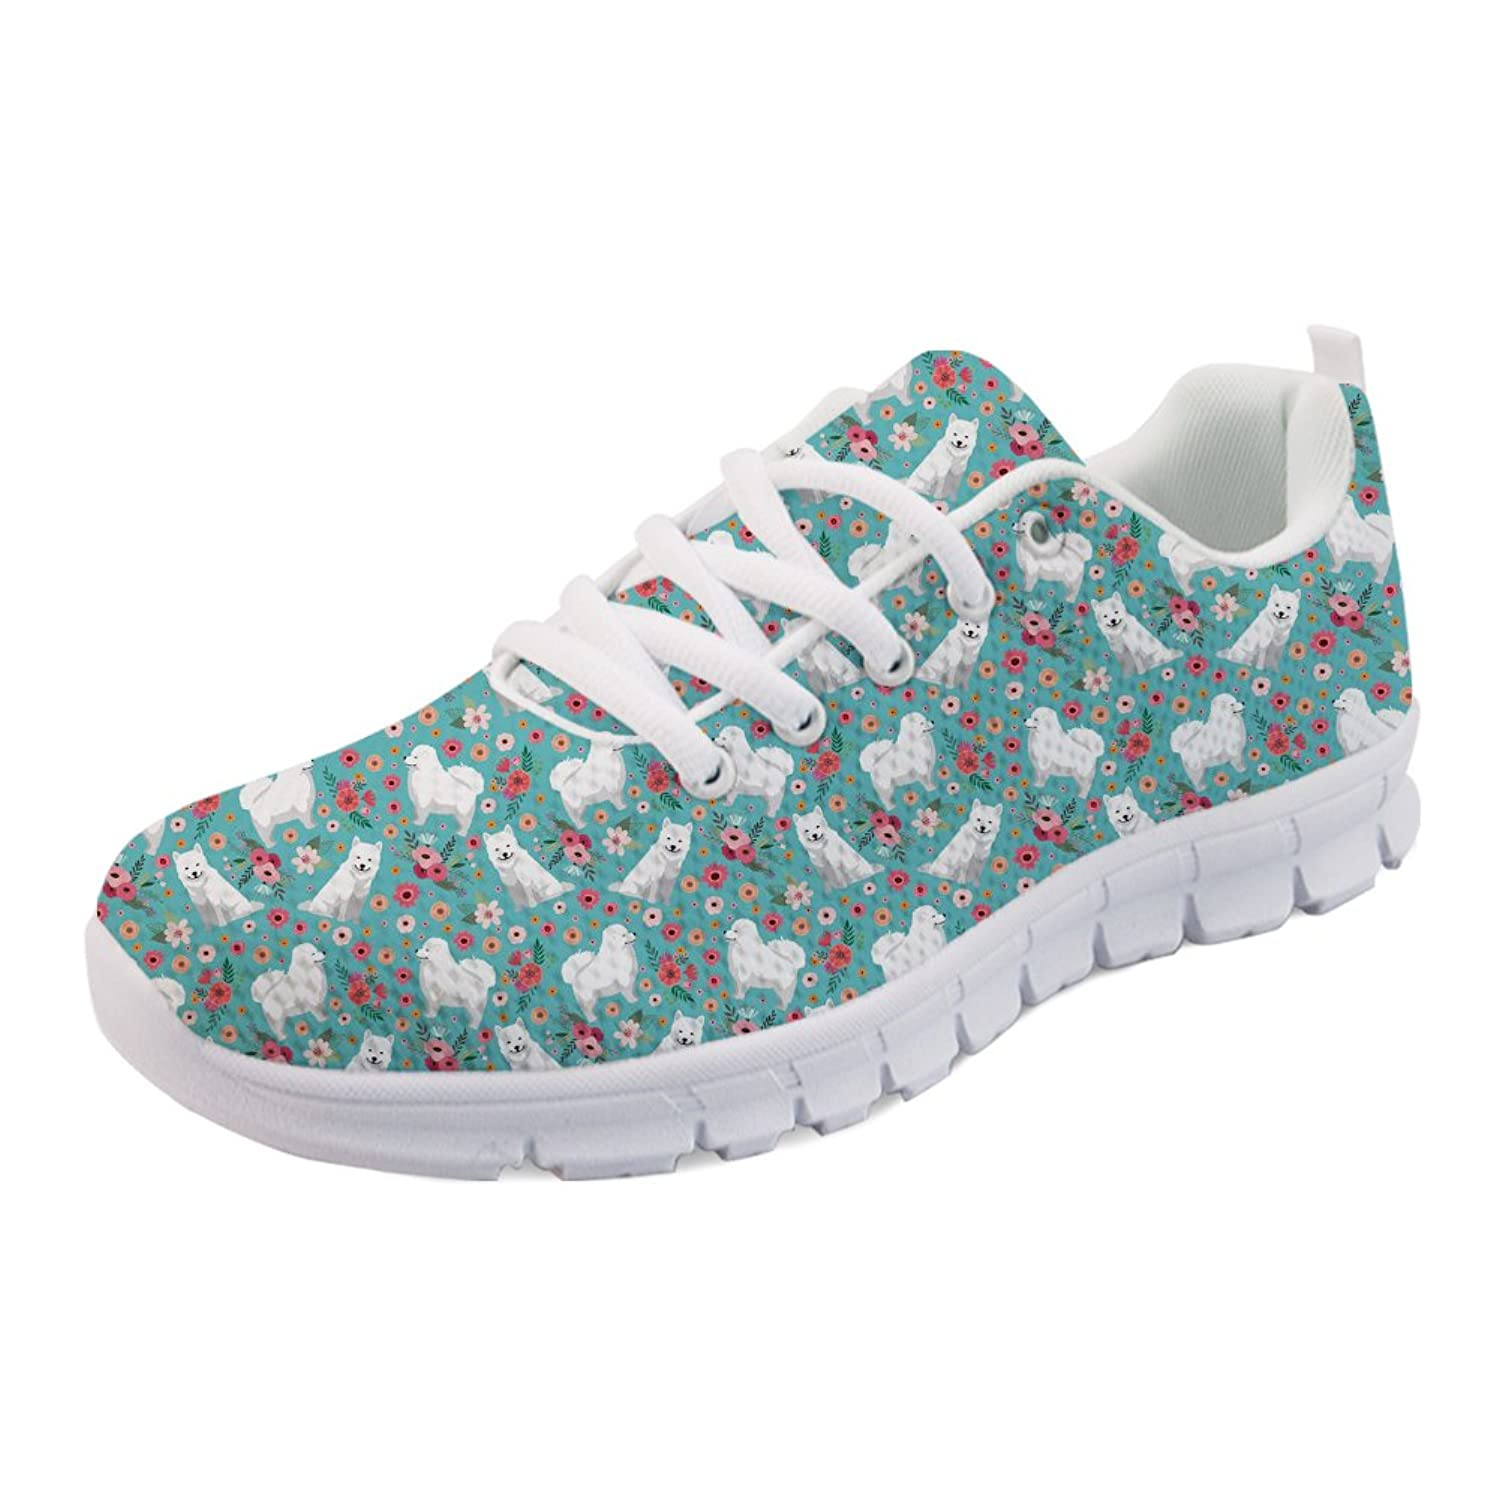 Coloranimal Women Lightweight Sports Running Walking Shoes Lace-up Flats